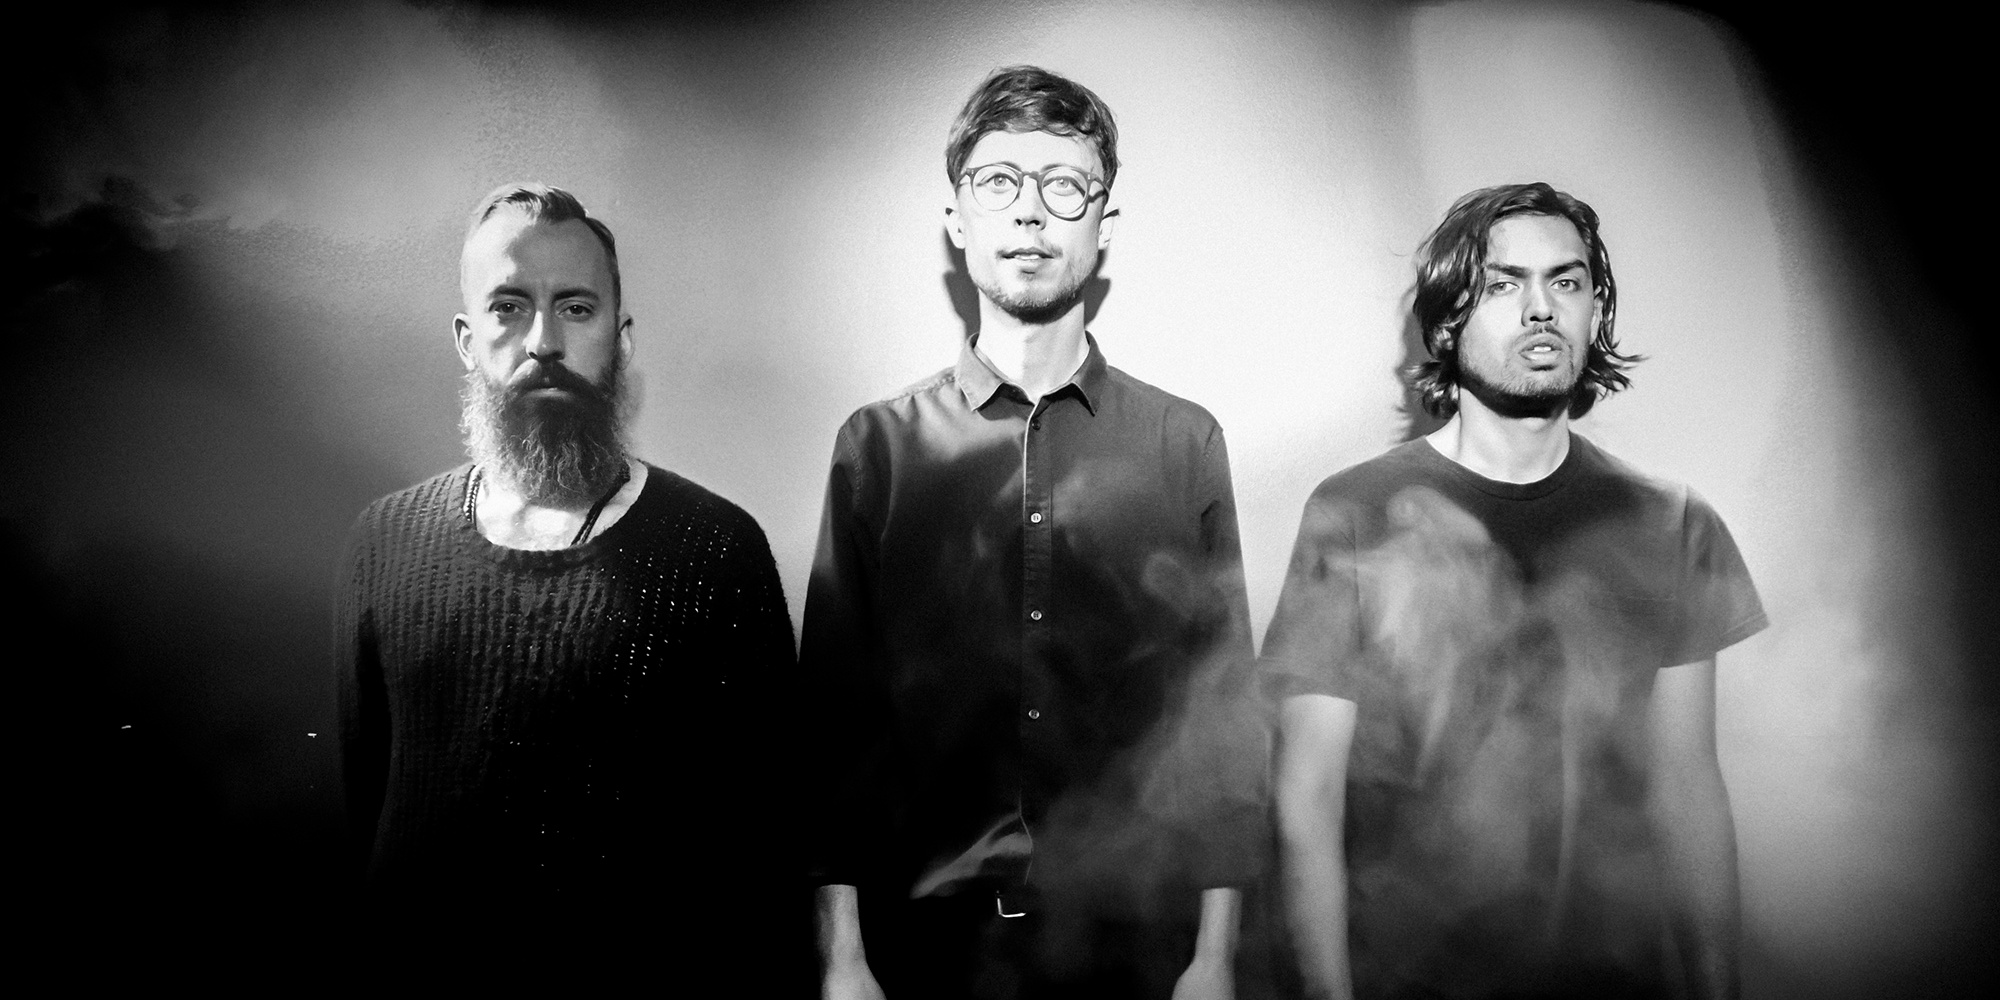 Experimental rock band My Disco return to Singapore